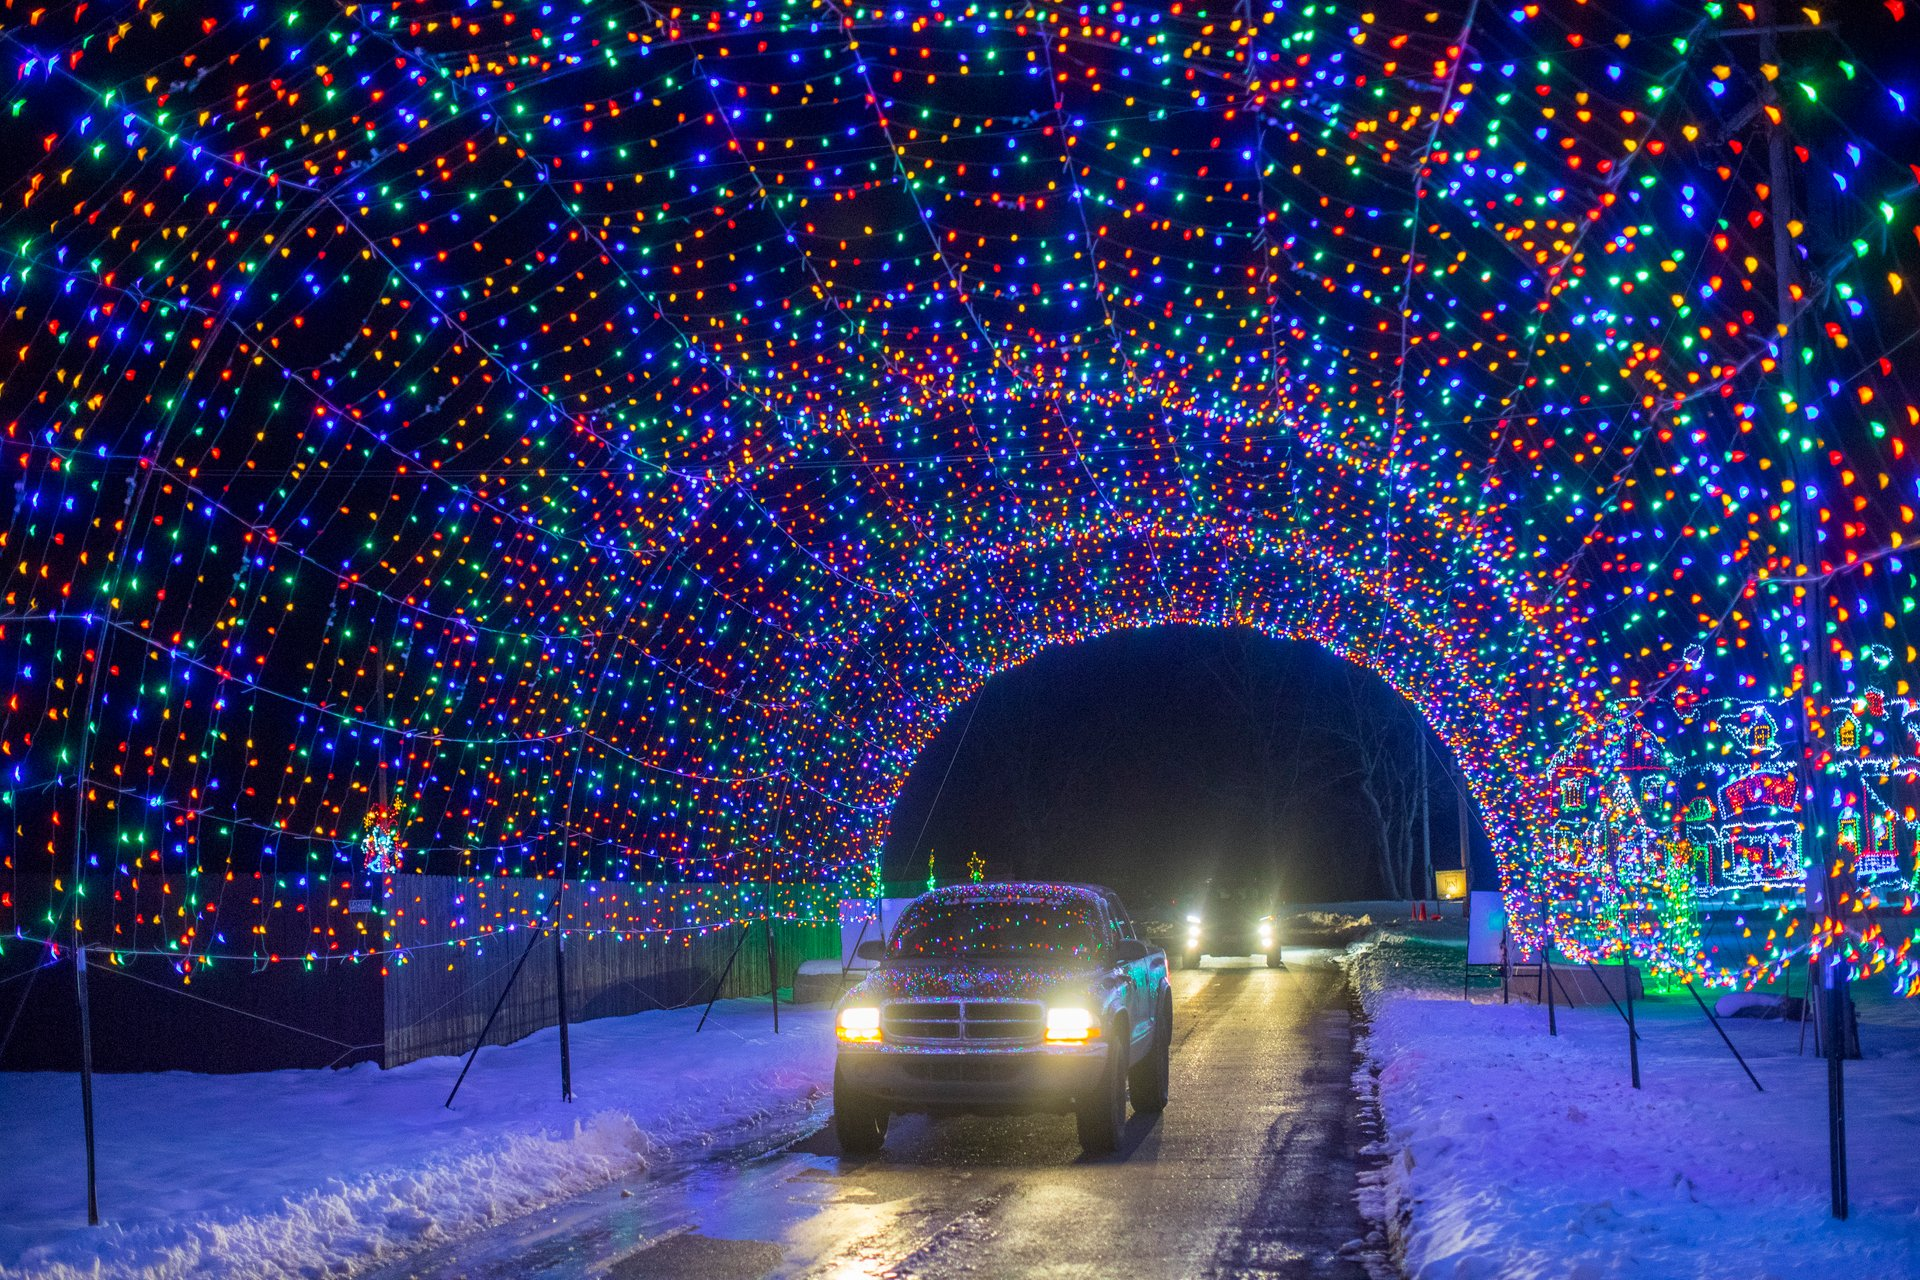 Hamburg Fairgrounds Festival of Lights in Niagara Falls 2020 - Best Time